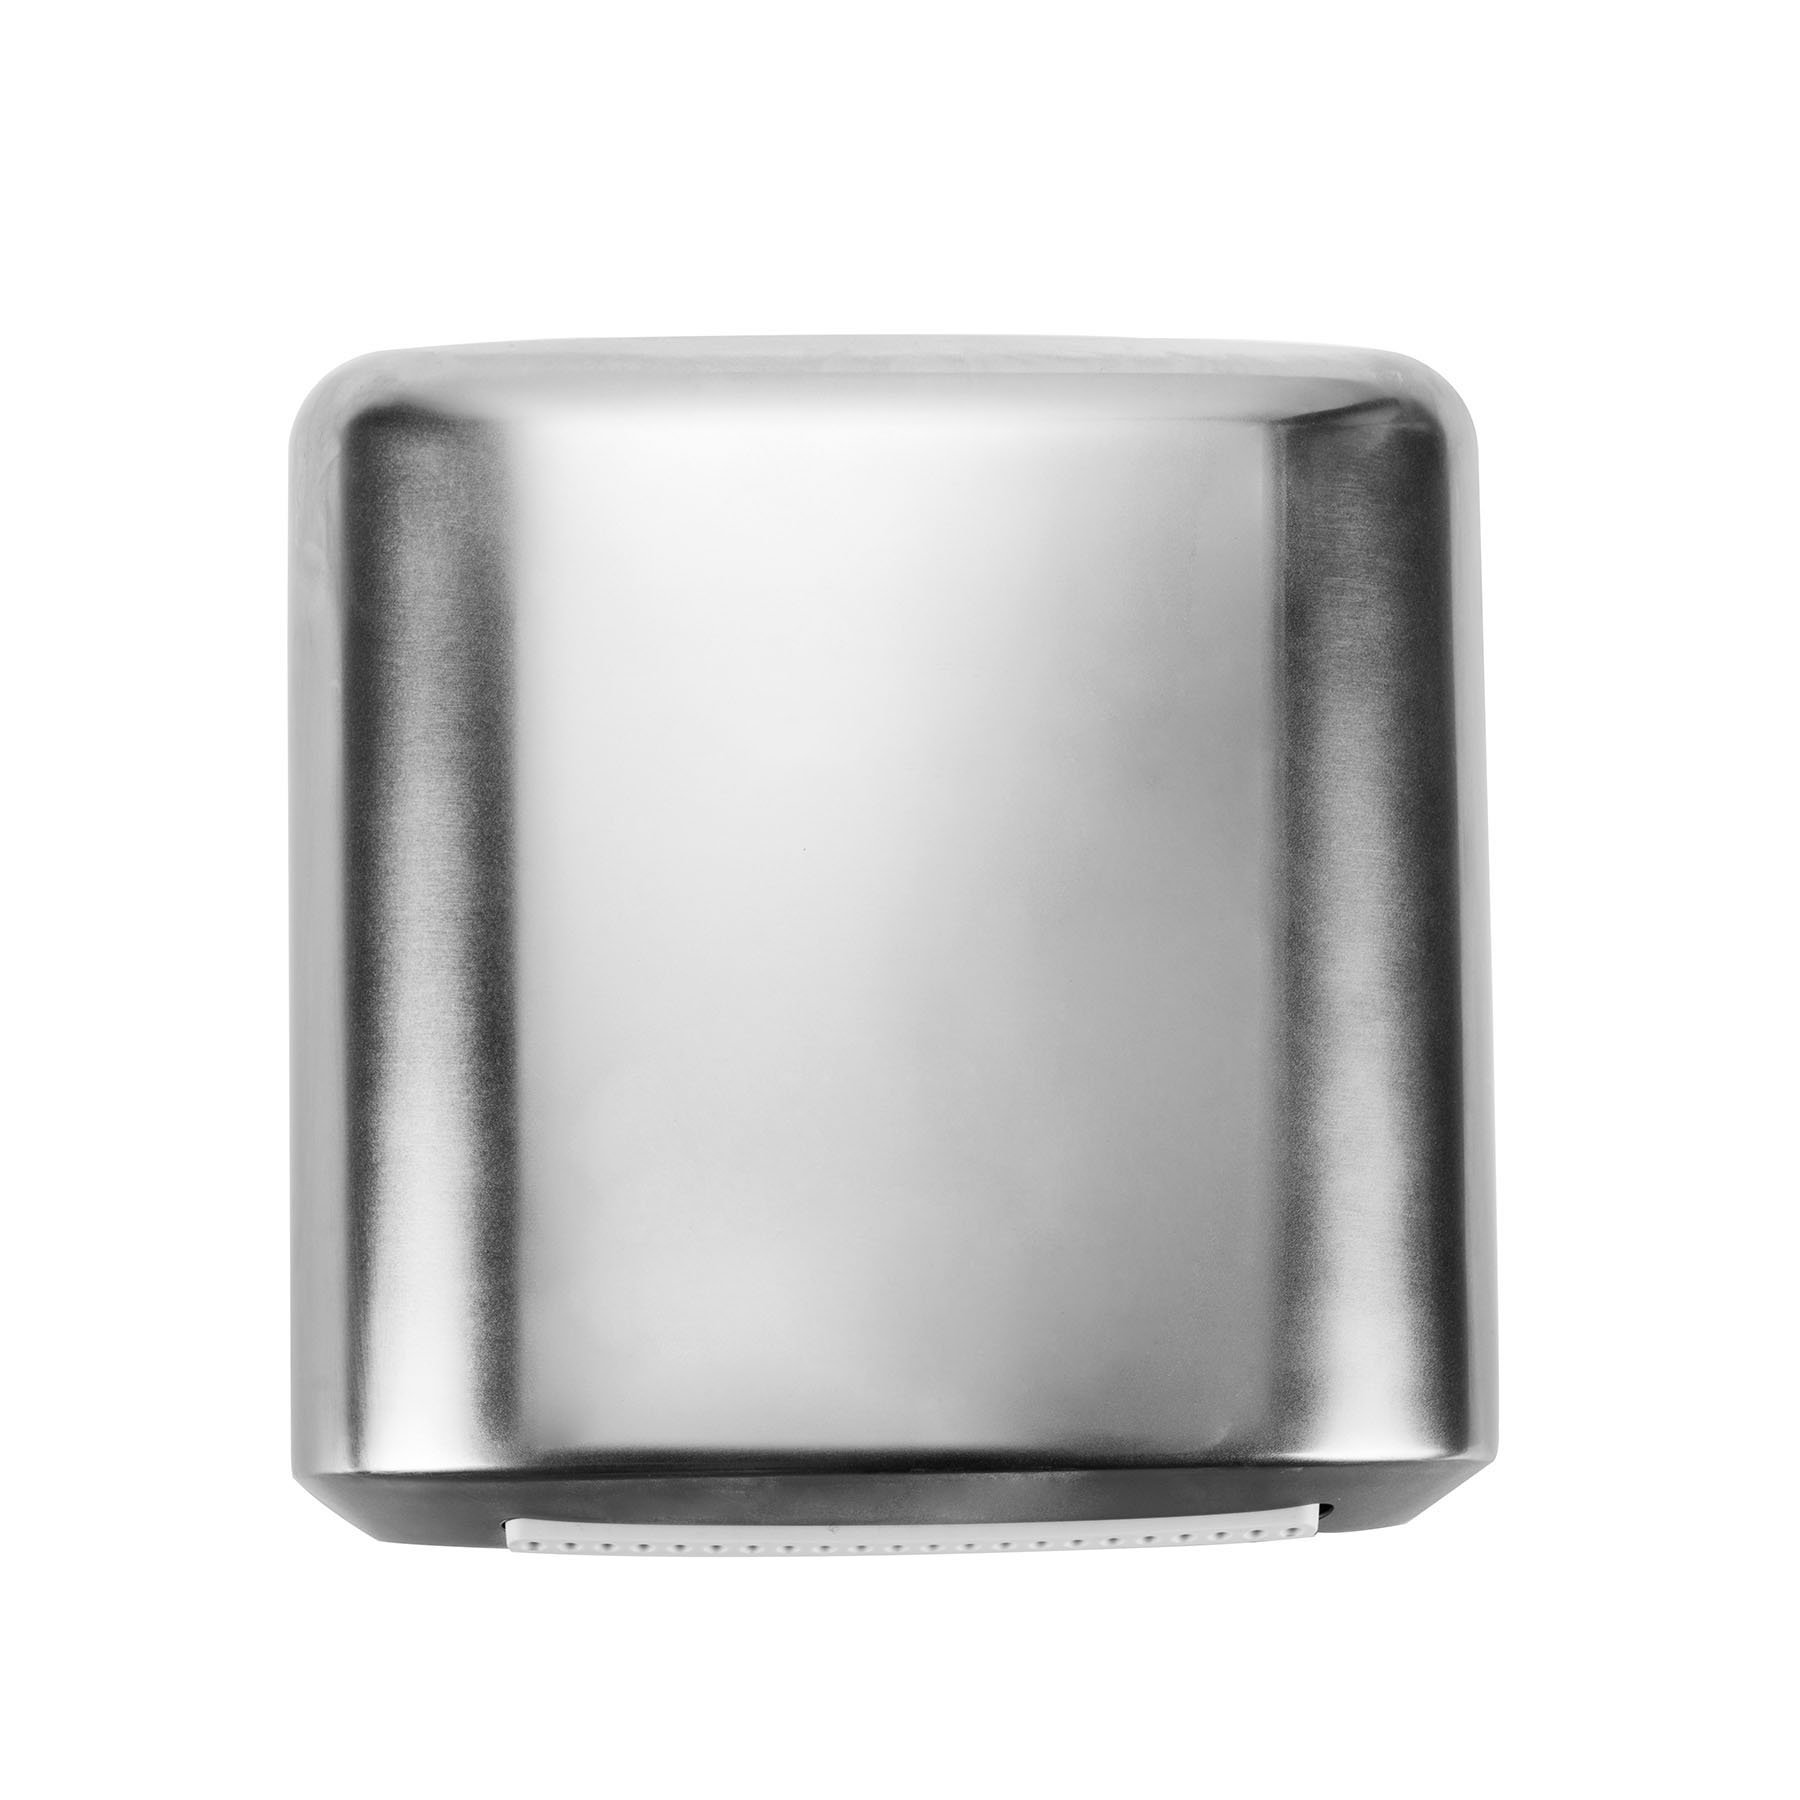 Automatic Hand Dryer for Commercial Bathroom, Brushed Stainless Steel, 1000W High Speed